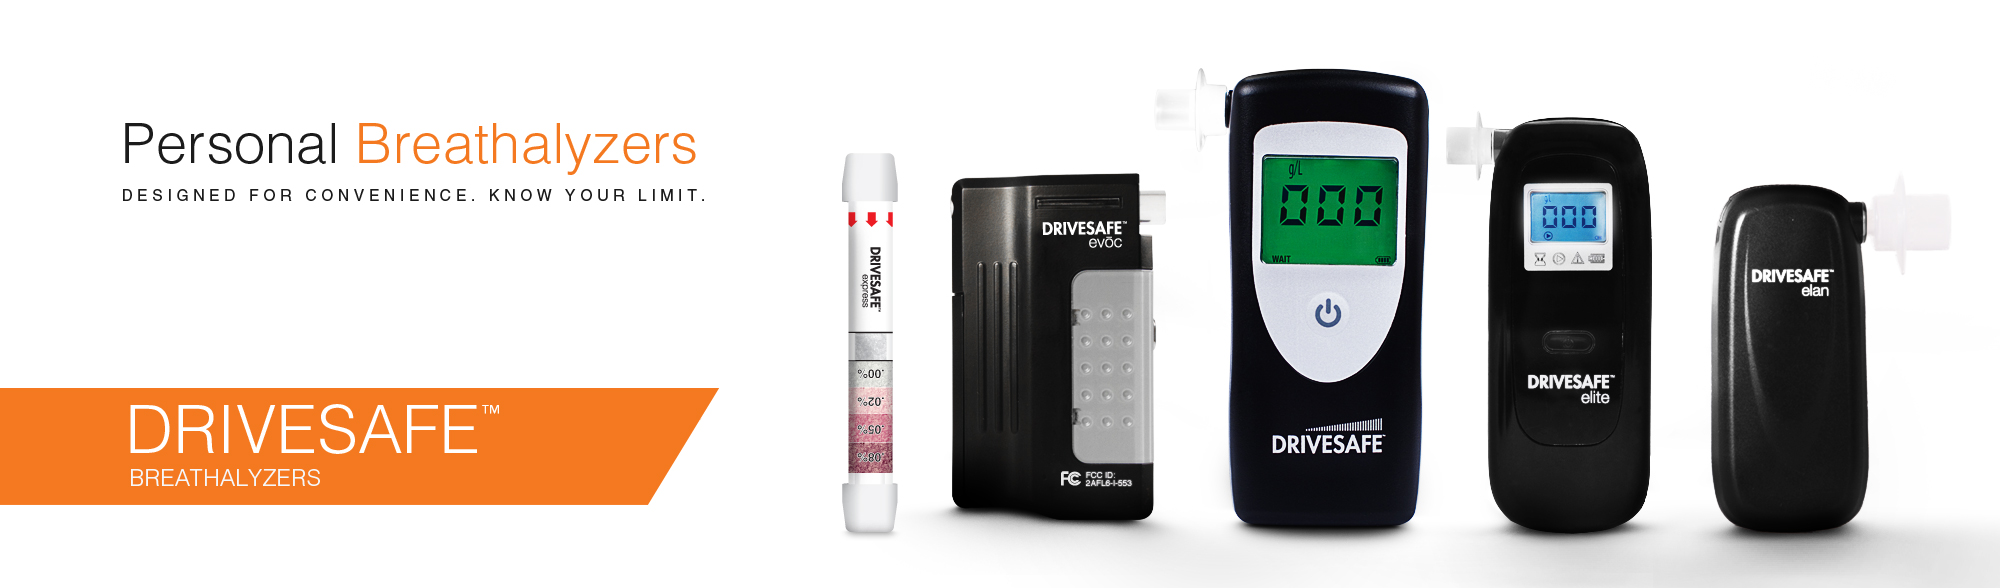 DRIVESAFE family of breathalyzers